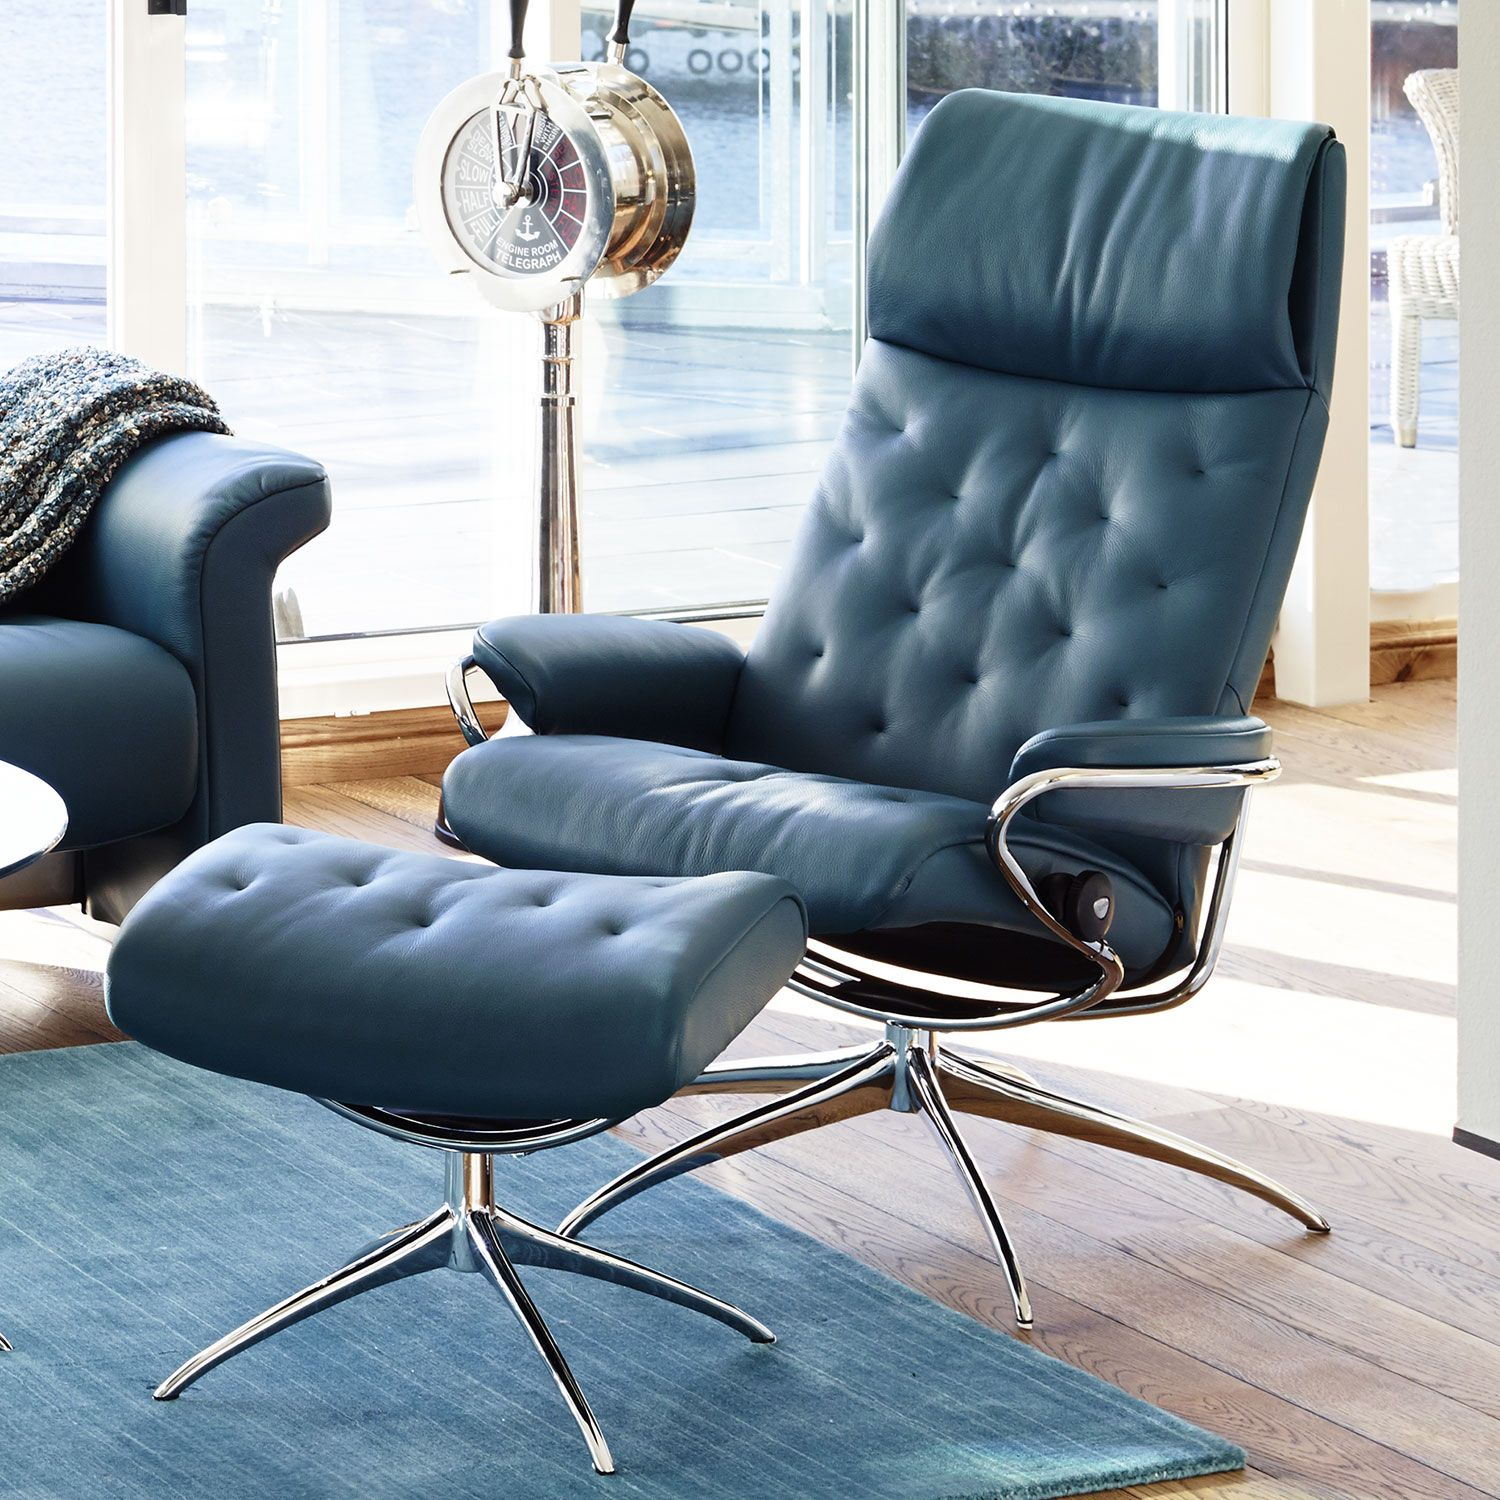 Stressless Sessel City High Back Stressless Metro High Back Mit Hocker Einrichten